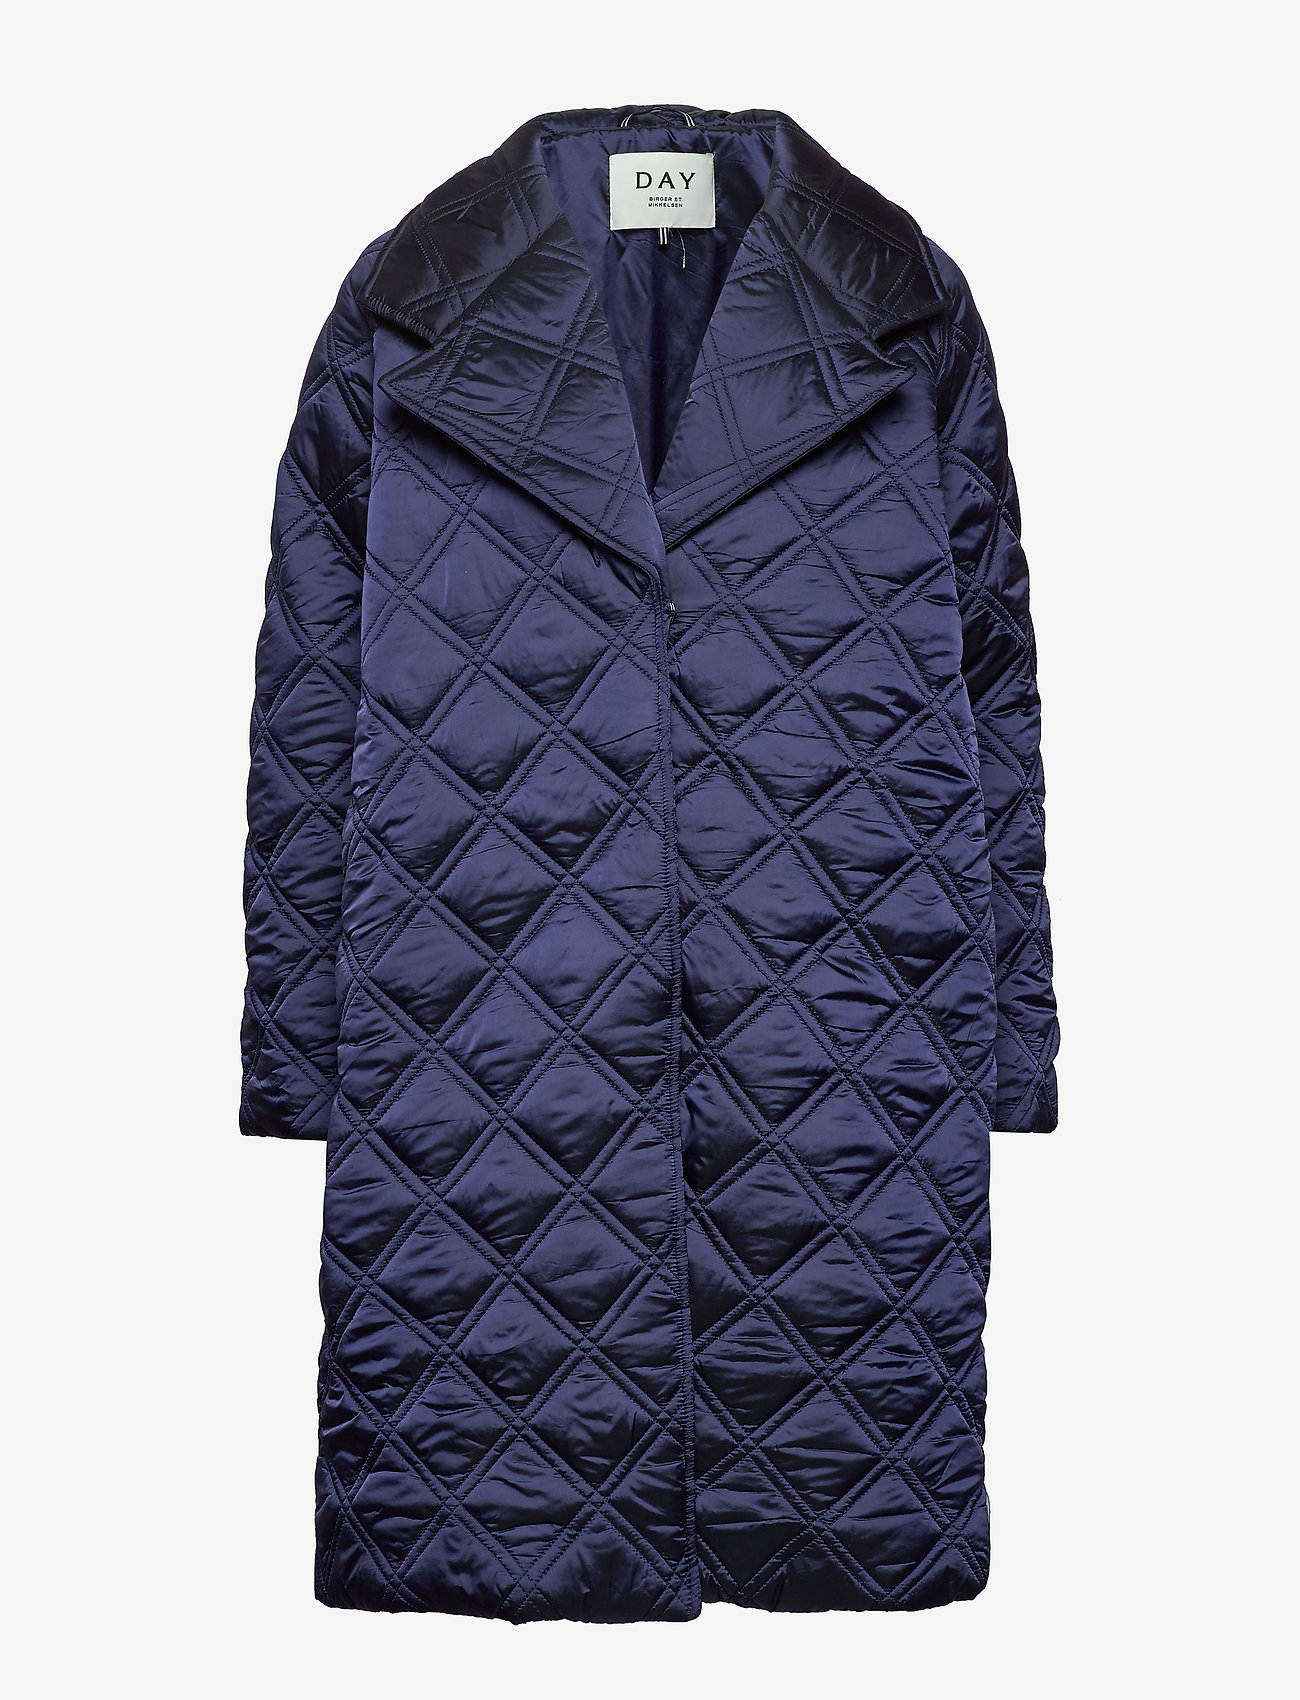 Day Acqua (Sailor) (1300 kr) - Day Birger et Mikkelsen